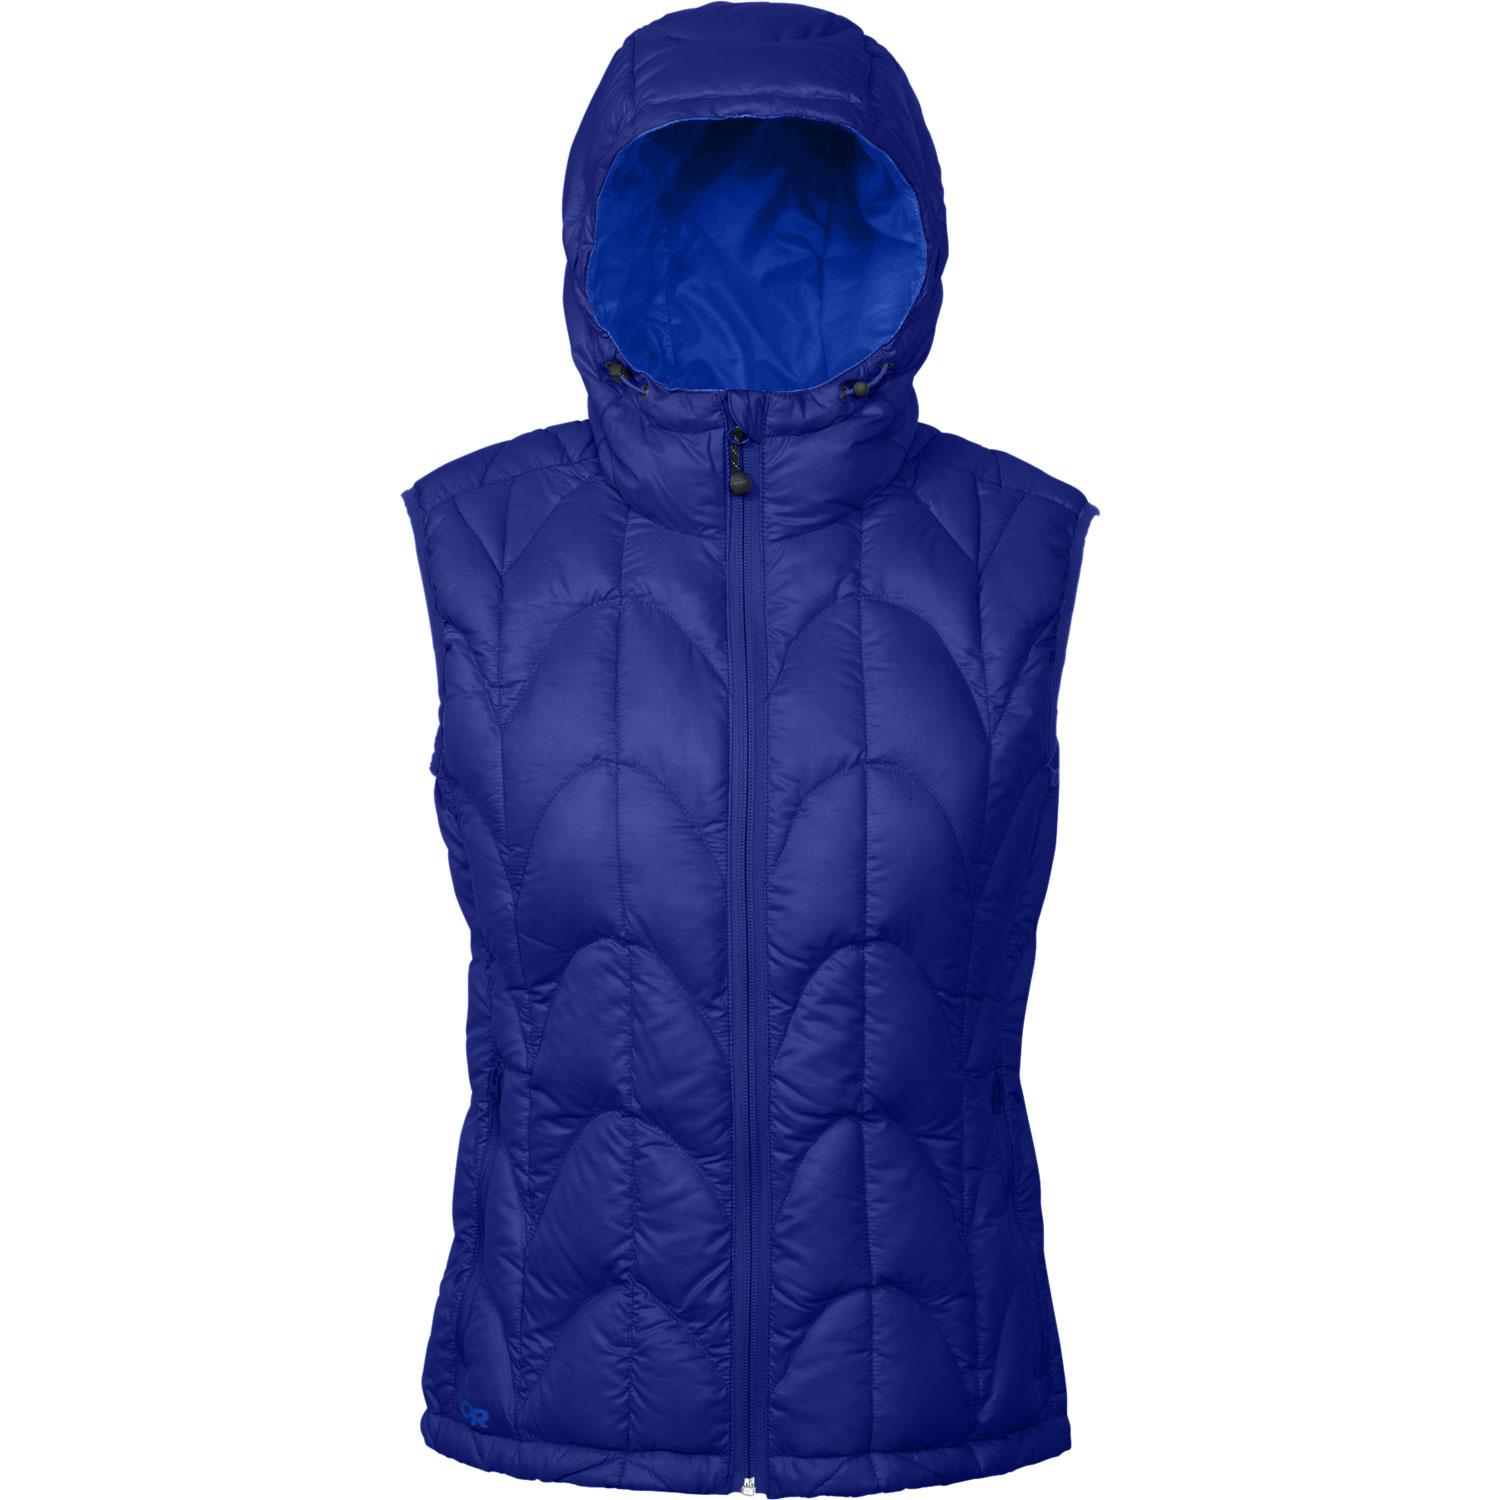 "When a down jacket is overkill, turn to this ultralight, ultra-packable vest for warmth in the backcountryKey Features of the Outdoor Research Aria Vest: 20D, 100% polyester ripstop shell 650+ fill down insulation Ultralight shell Adjustable hood Internal front zip stormflap Multiple pockets: handwarmer, internal Elastic cuffs Drawcord hem Stuff sack included (M) 9.7 oz. / 274 g STANDARD FIT CENTER BACK LENGTH: 26"" / 65 cm - $114.95"